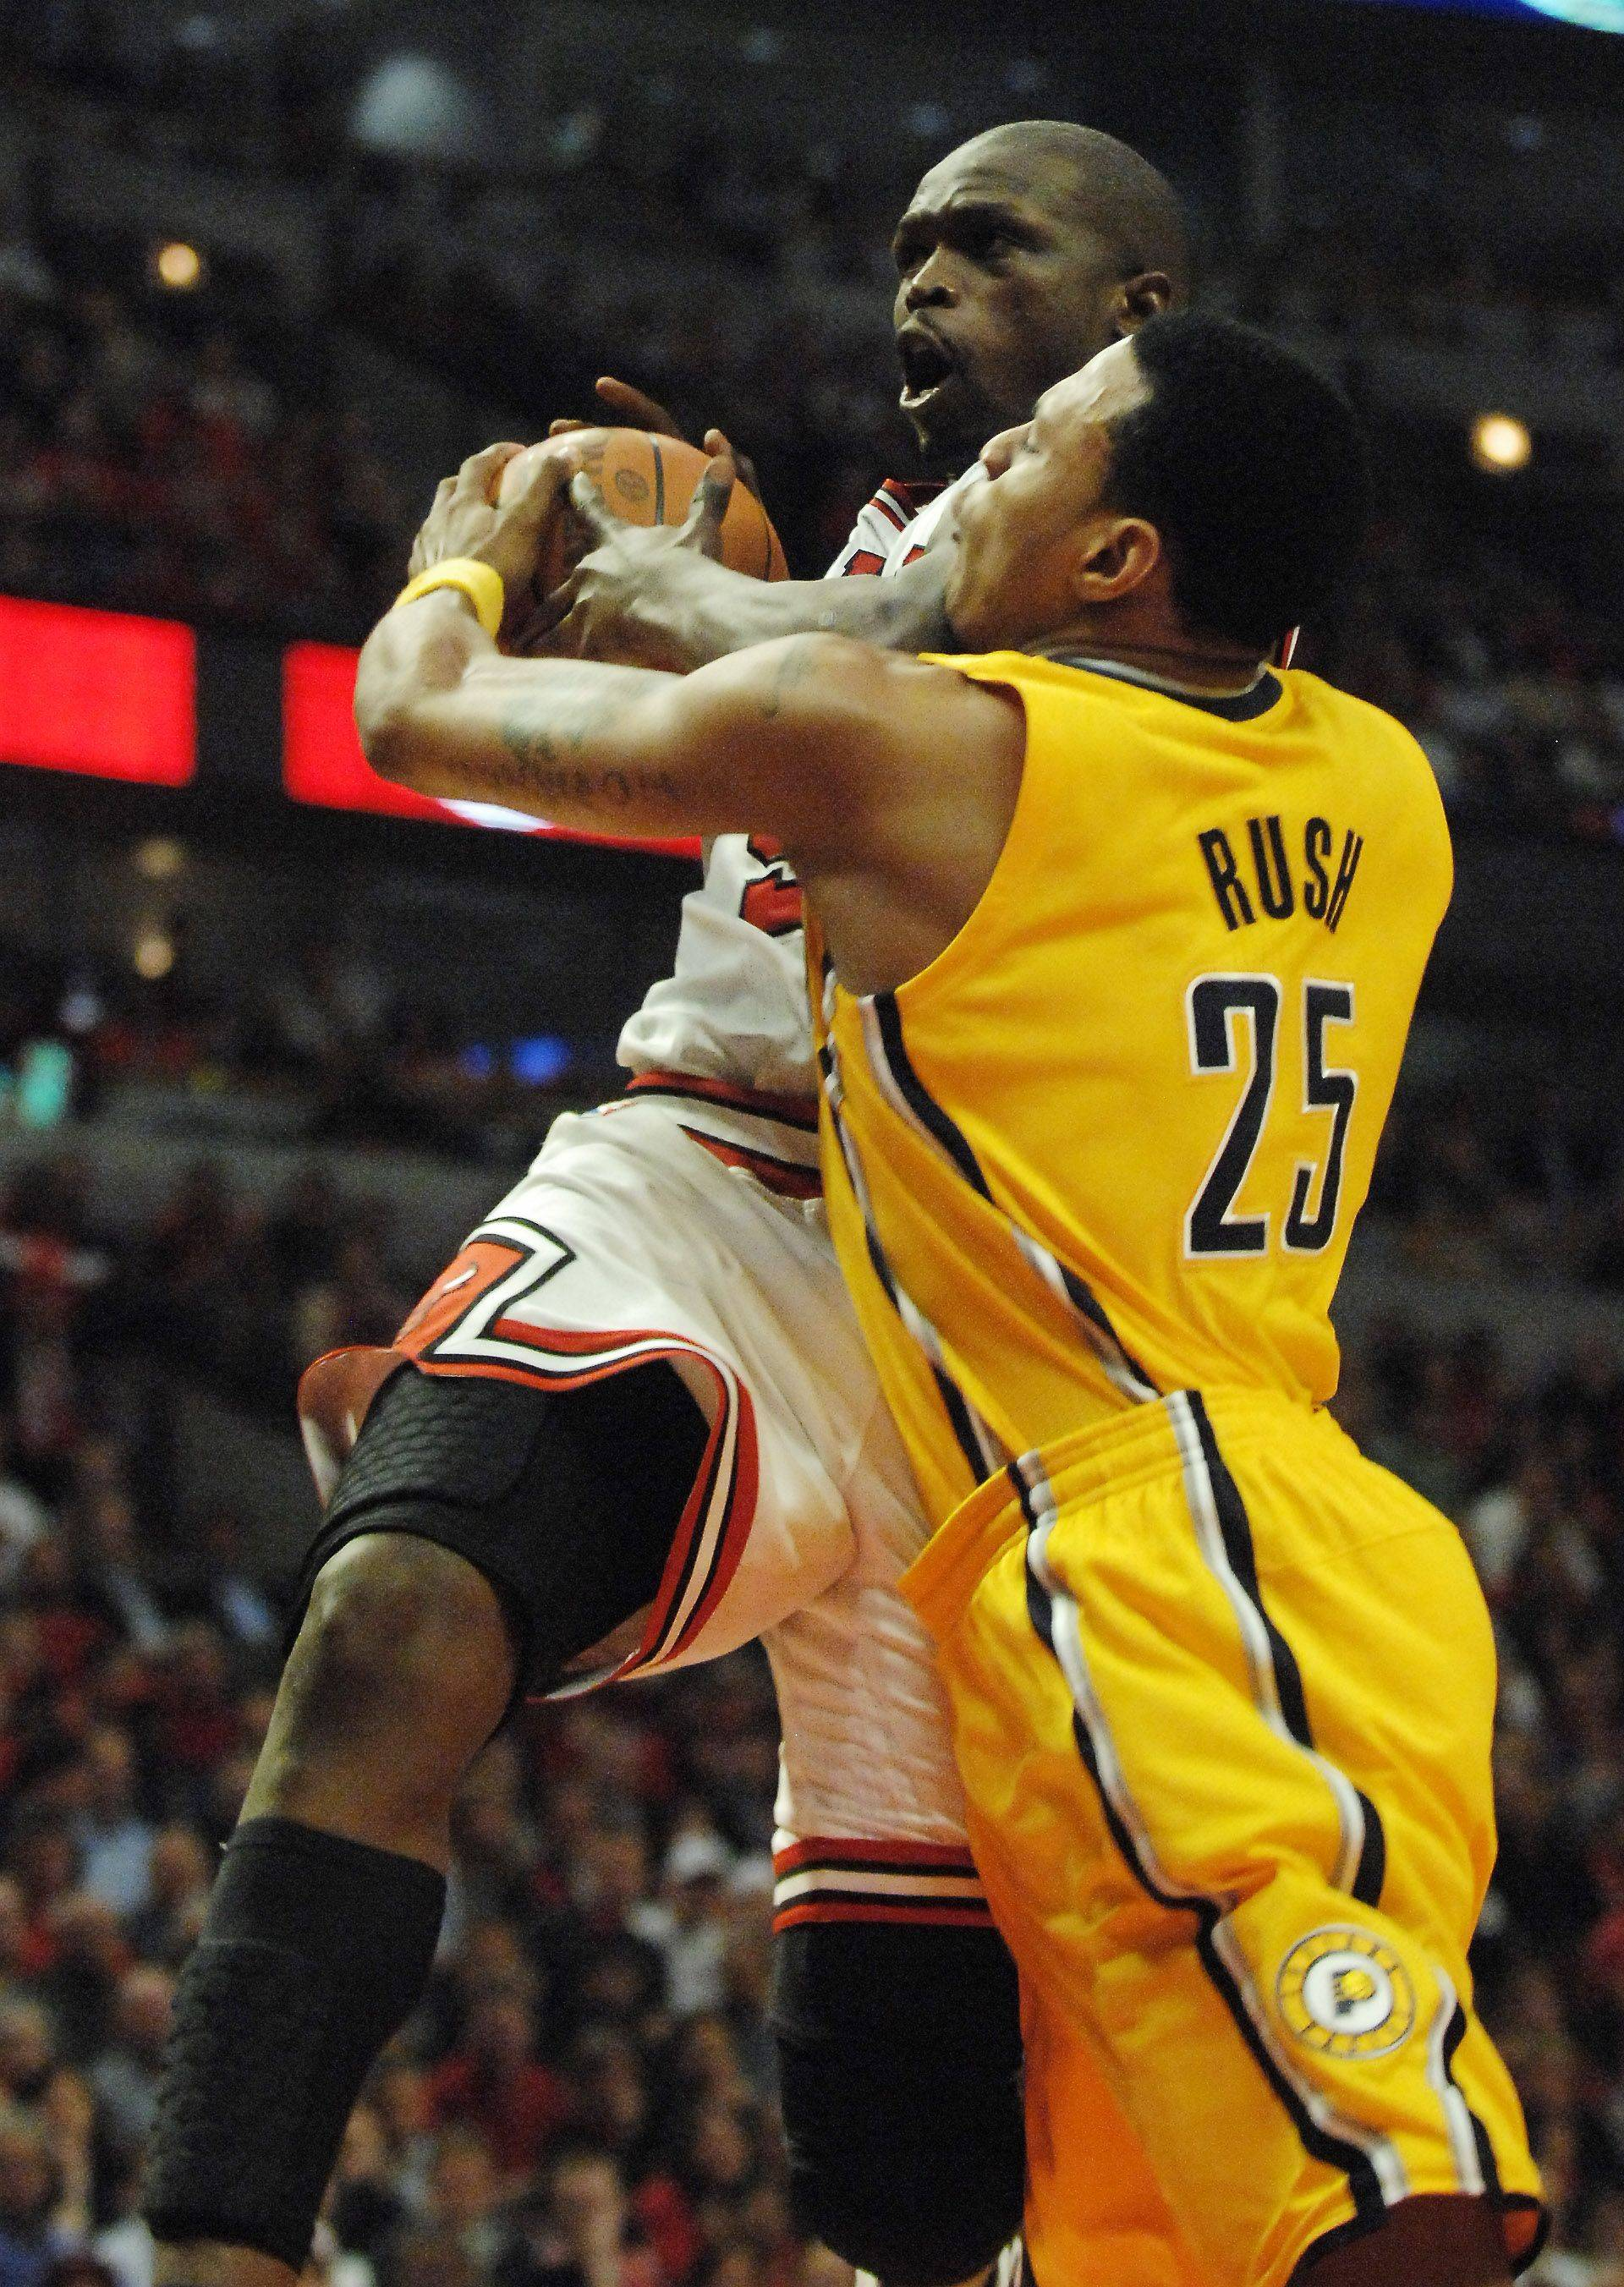 Bulls forward Luol Deng gets fouled by Pacers guard Brandon Rush during game 5.